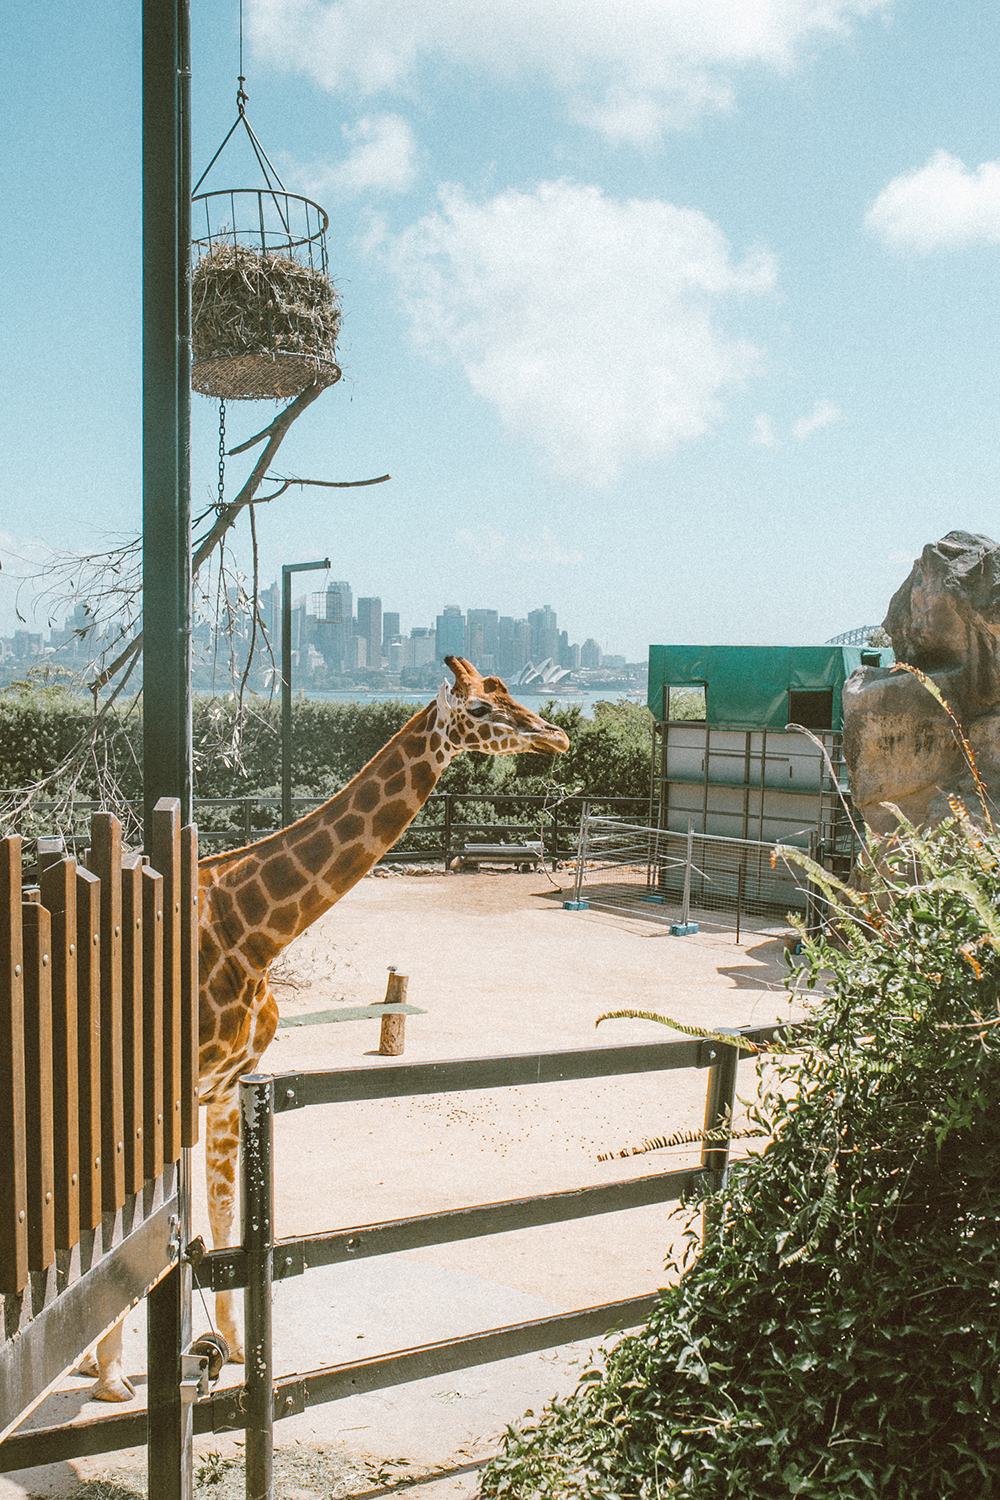 livvyland-blog-olivia-watson-austin-texas-fashion-travel-lifestyle-blogger-sydney-melbourne-australia-taronga-zoo-giraffes